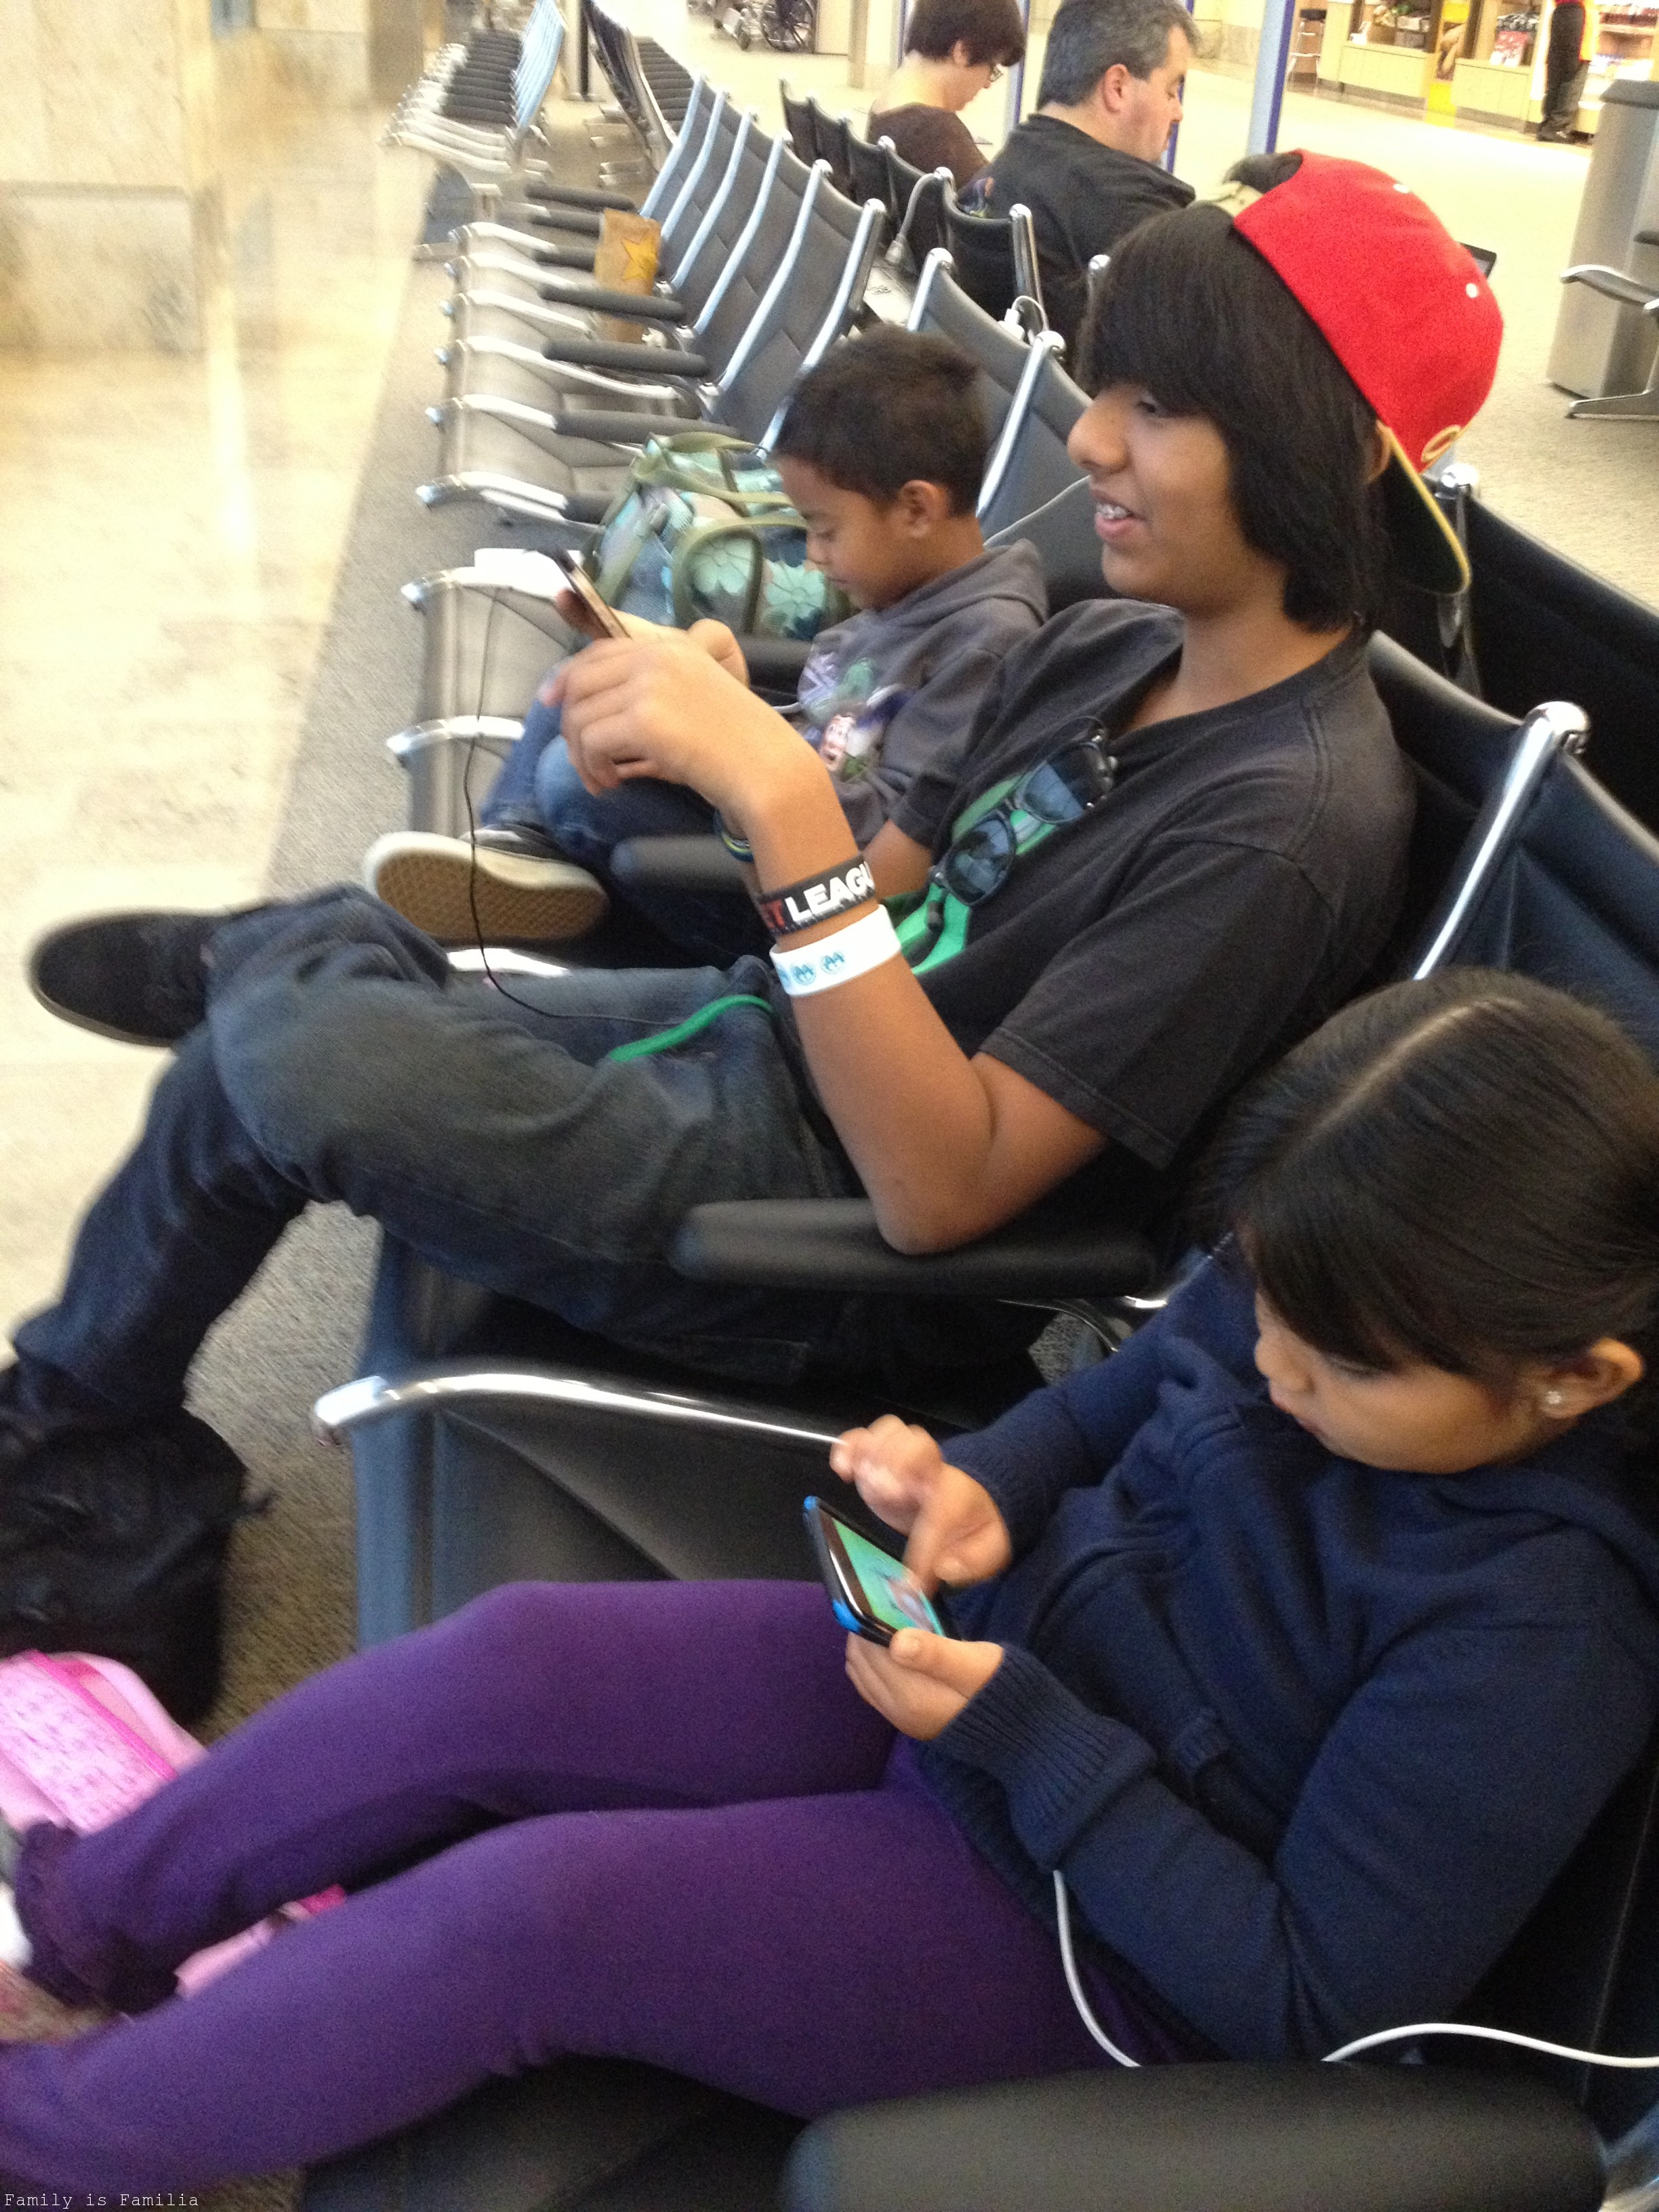 traveling-with-kids-of-all-ages